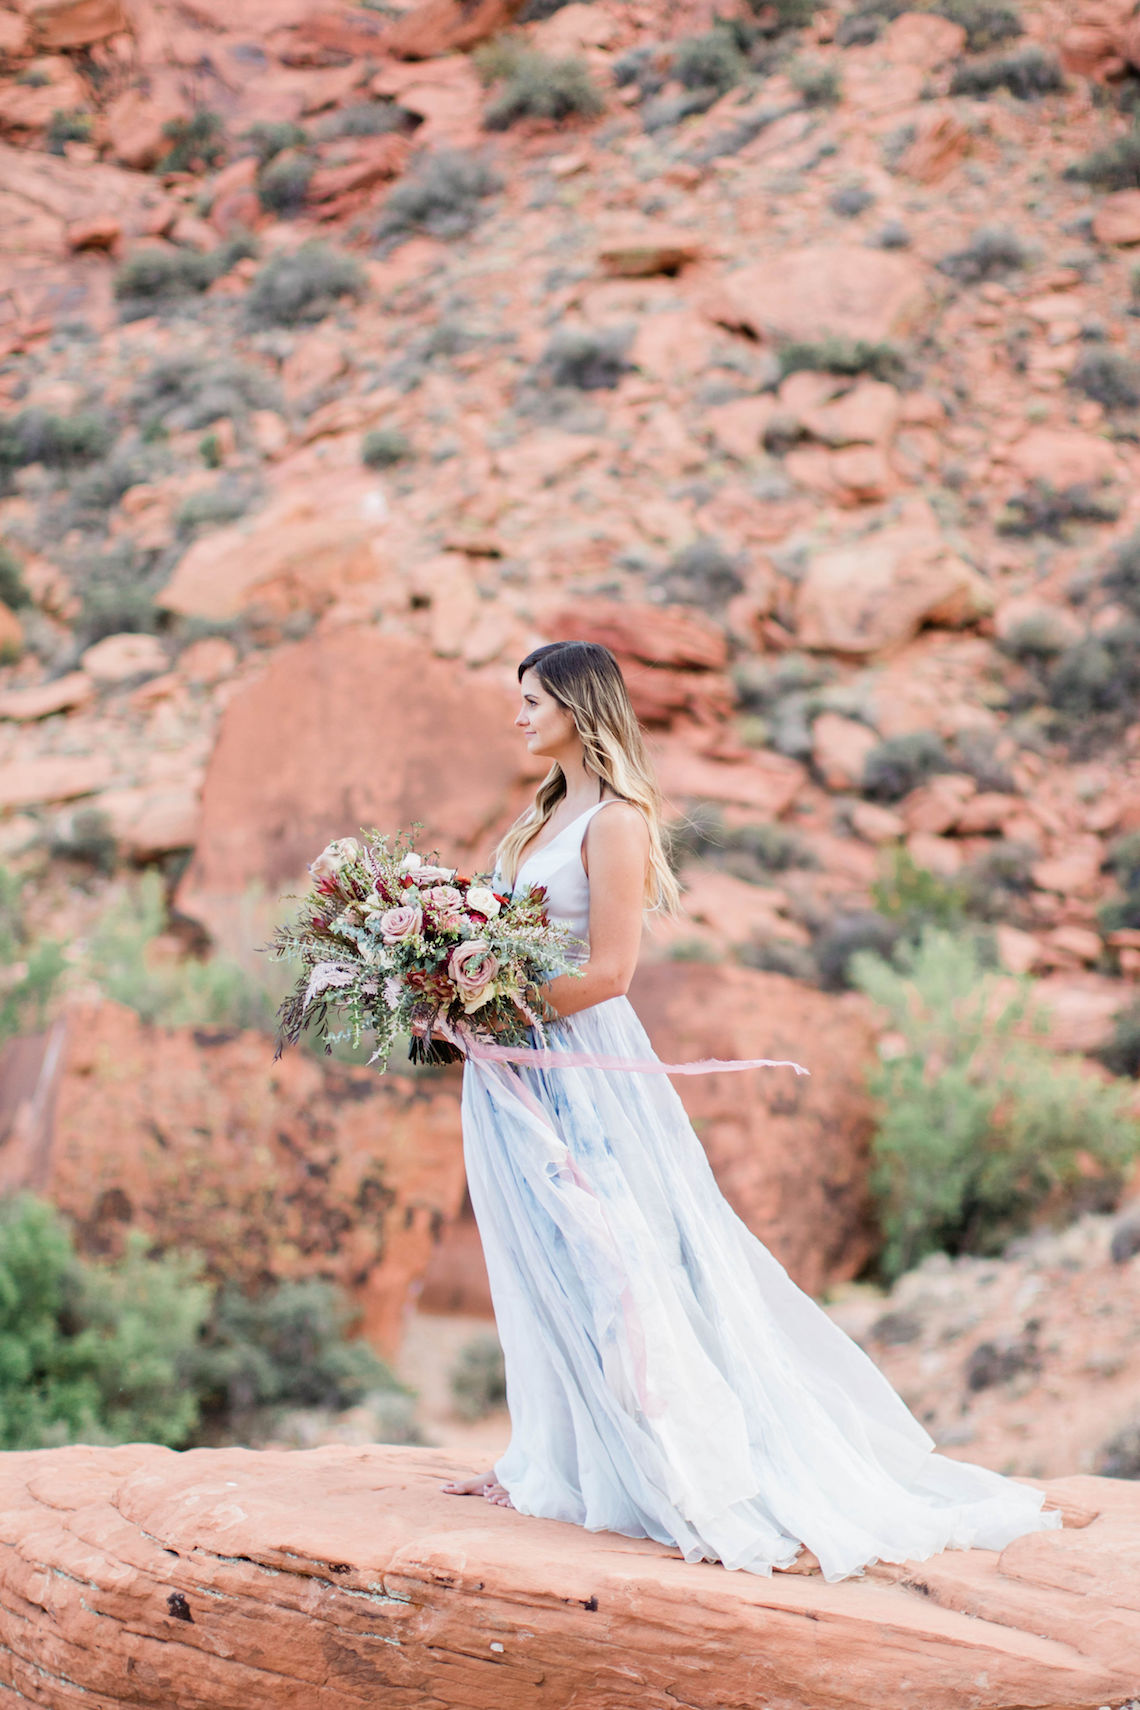 Red Rock Desert Romance With A Whimsical Blue Leanne Marshall Wedding Dress – Elizabeth M Photography 22